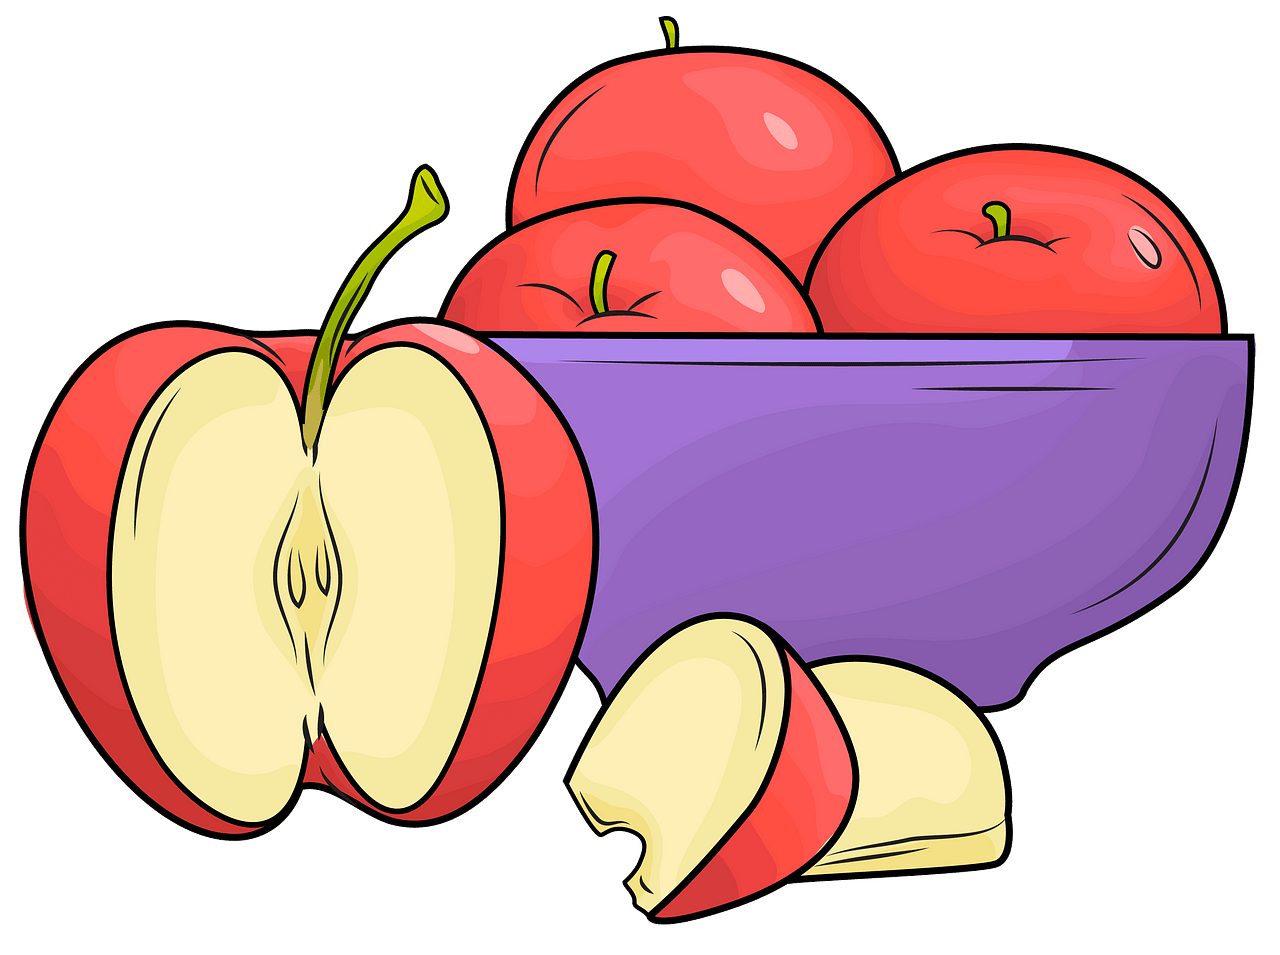 Apples in plate clipart png free A plate of apples clipart. Free download. | Creazilla png free